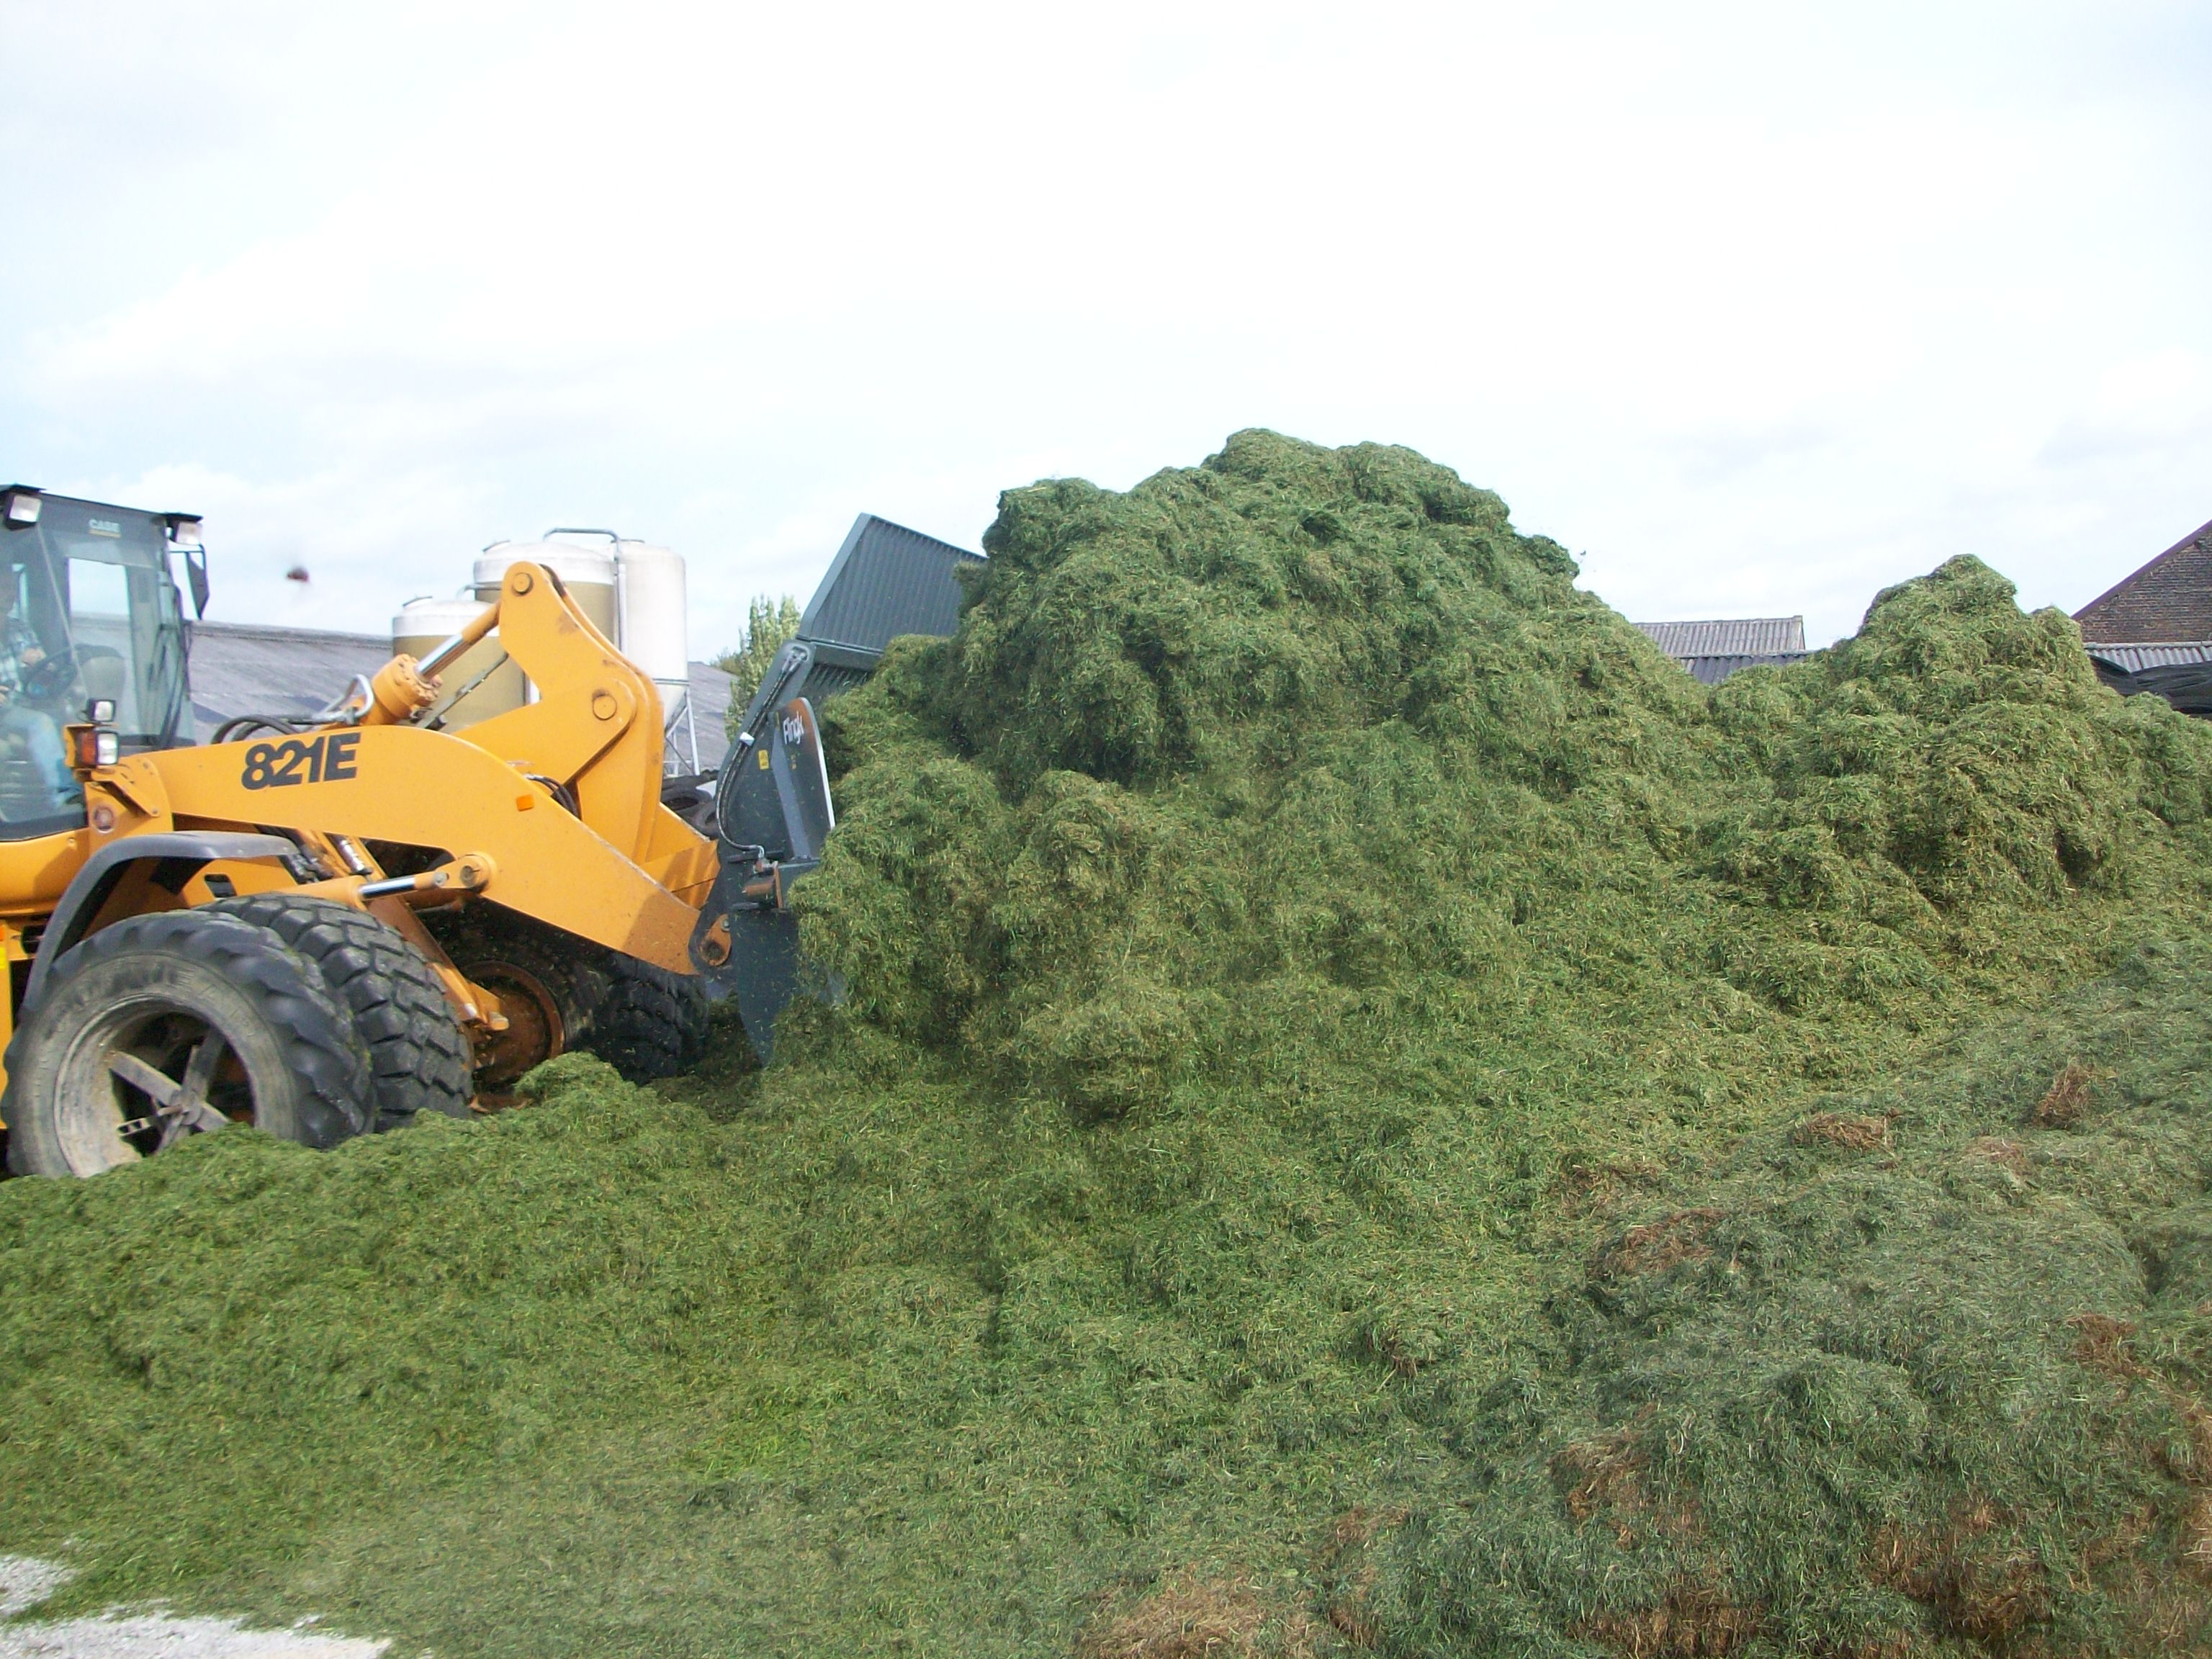 silage eater 10